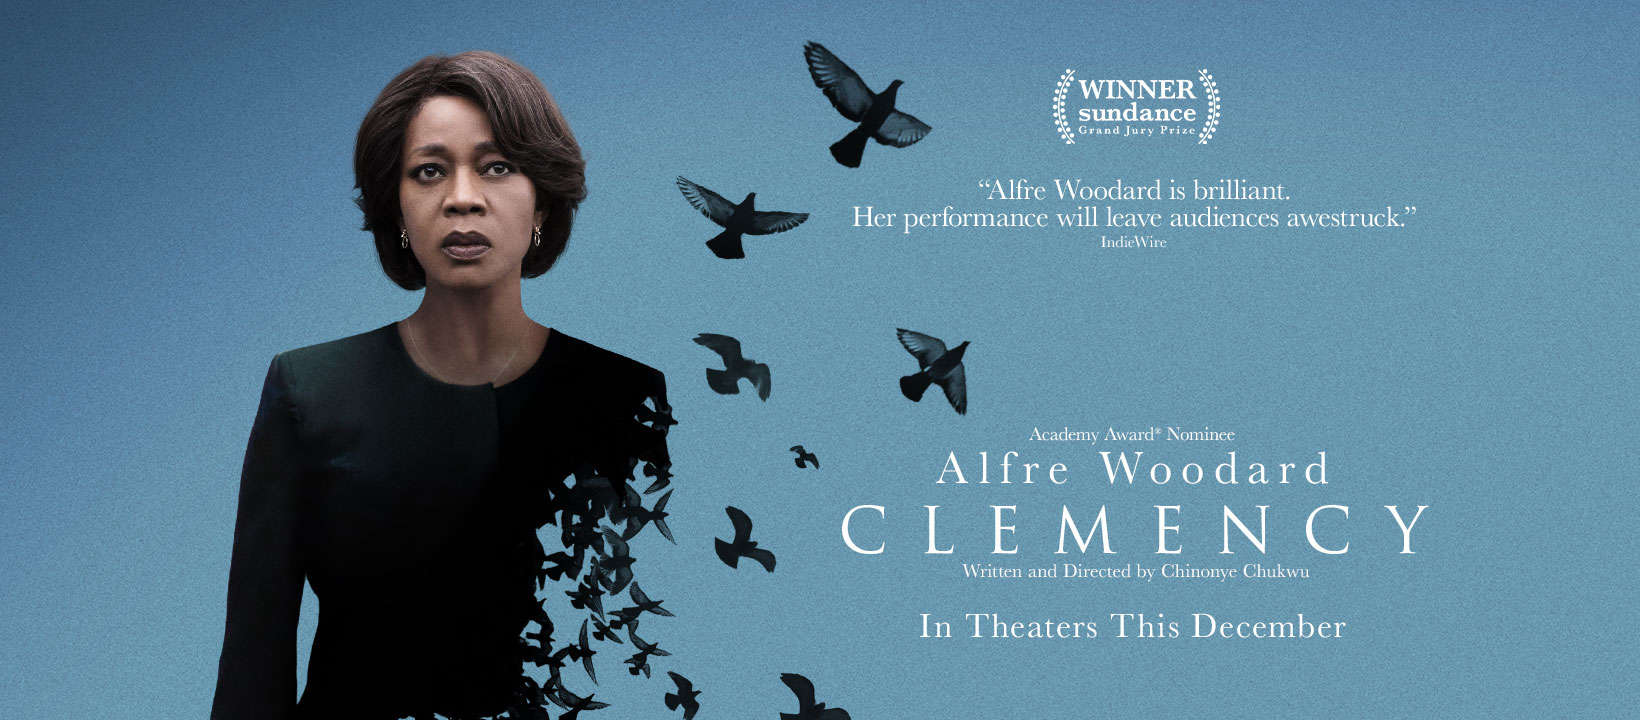 Clemency (December 27, 2019); Directed by Chinonye Chukwu